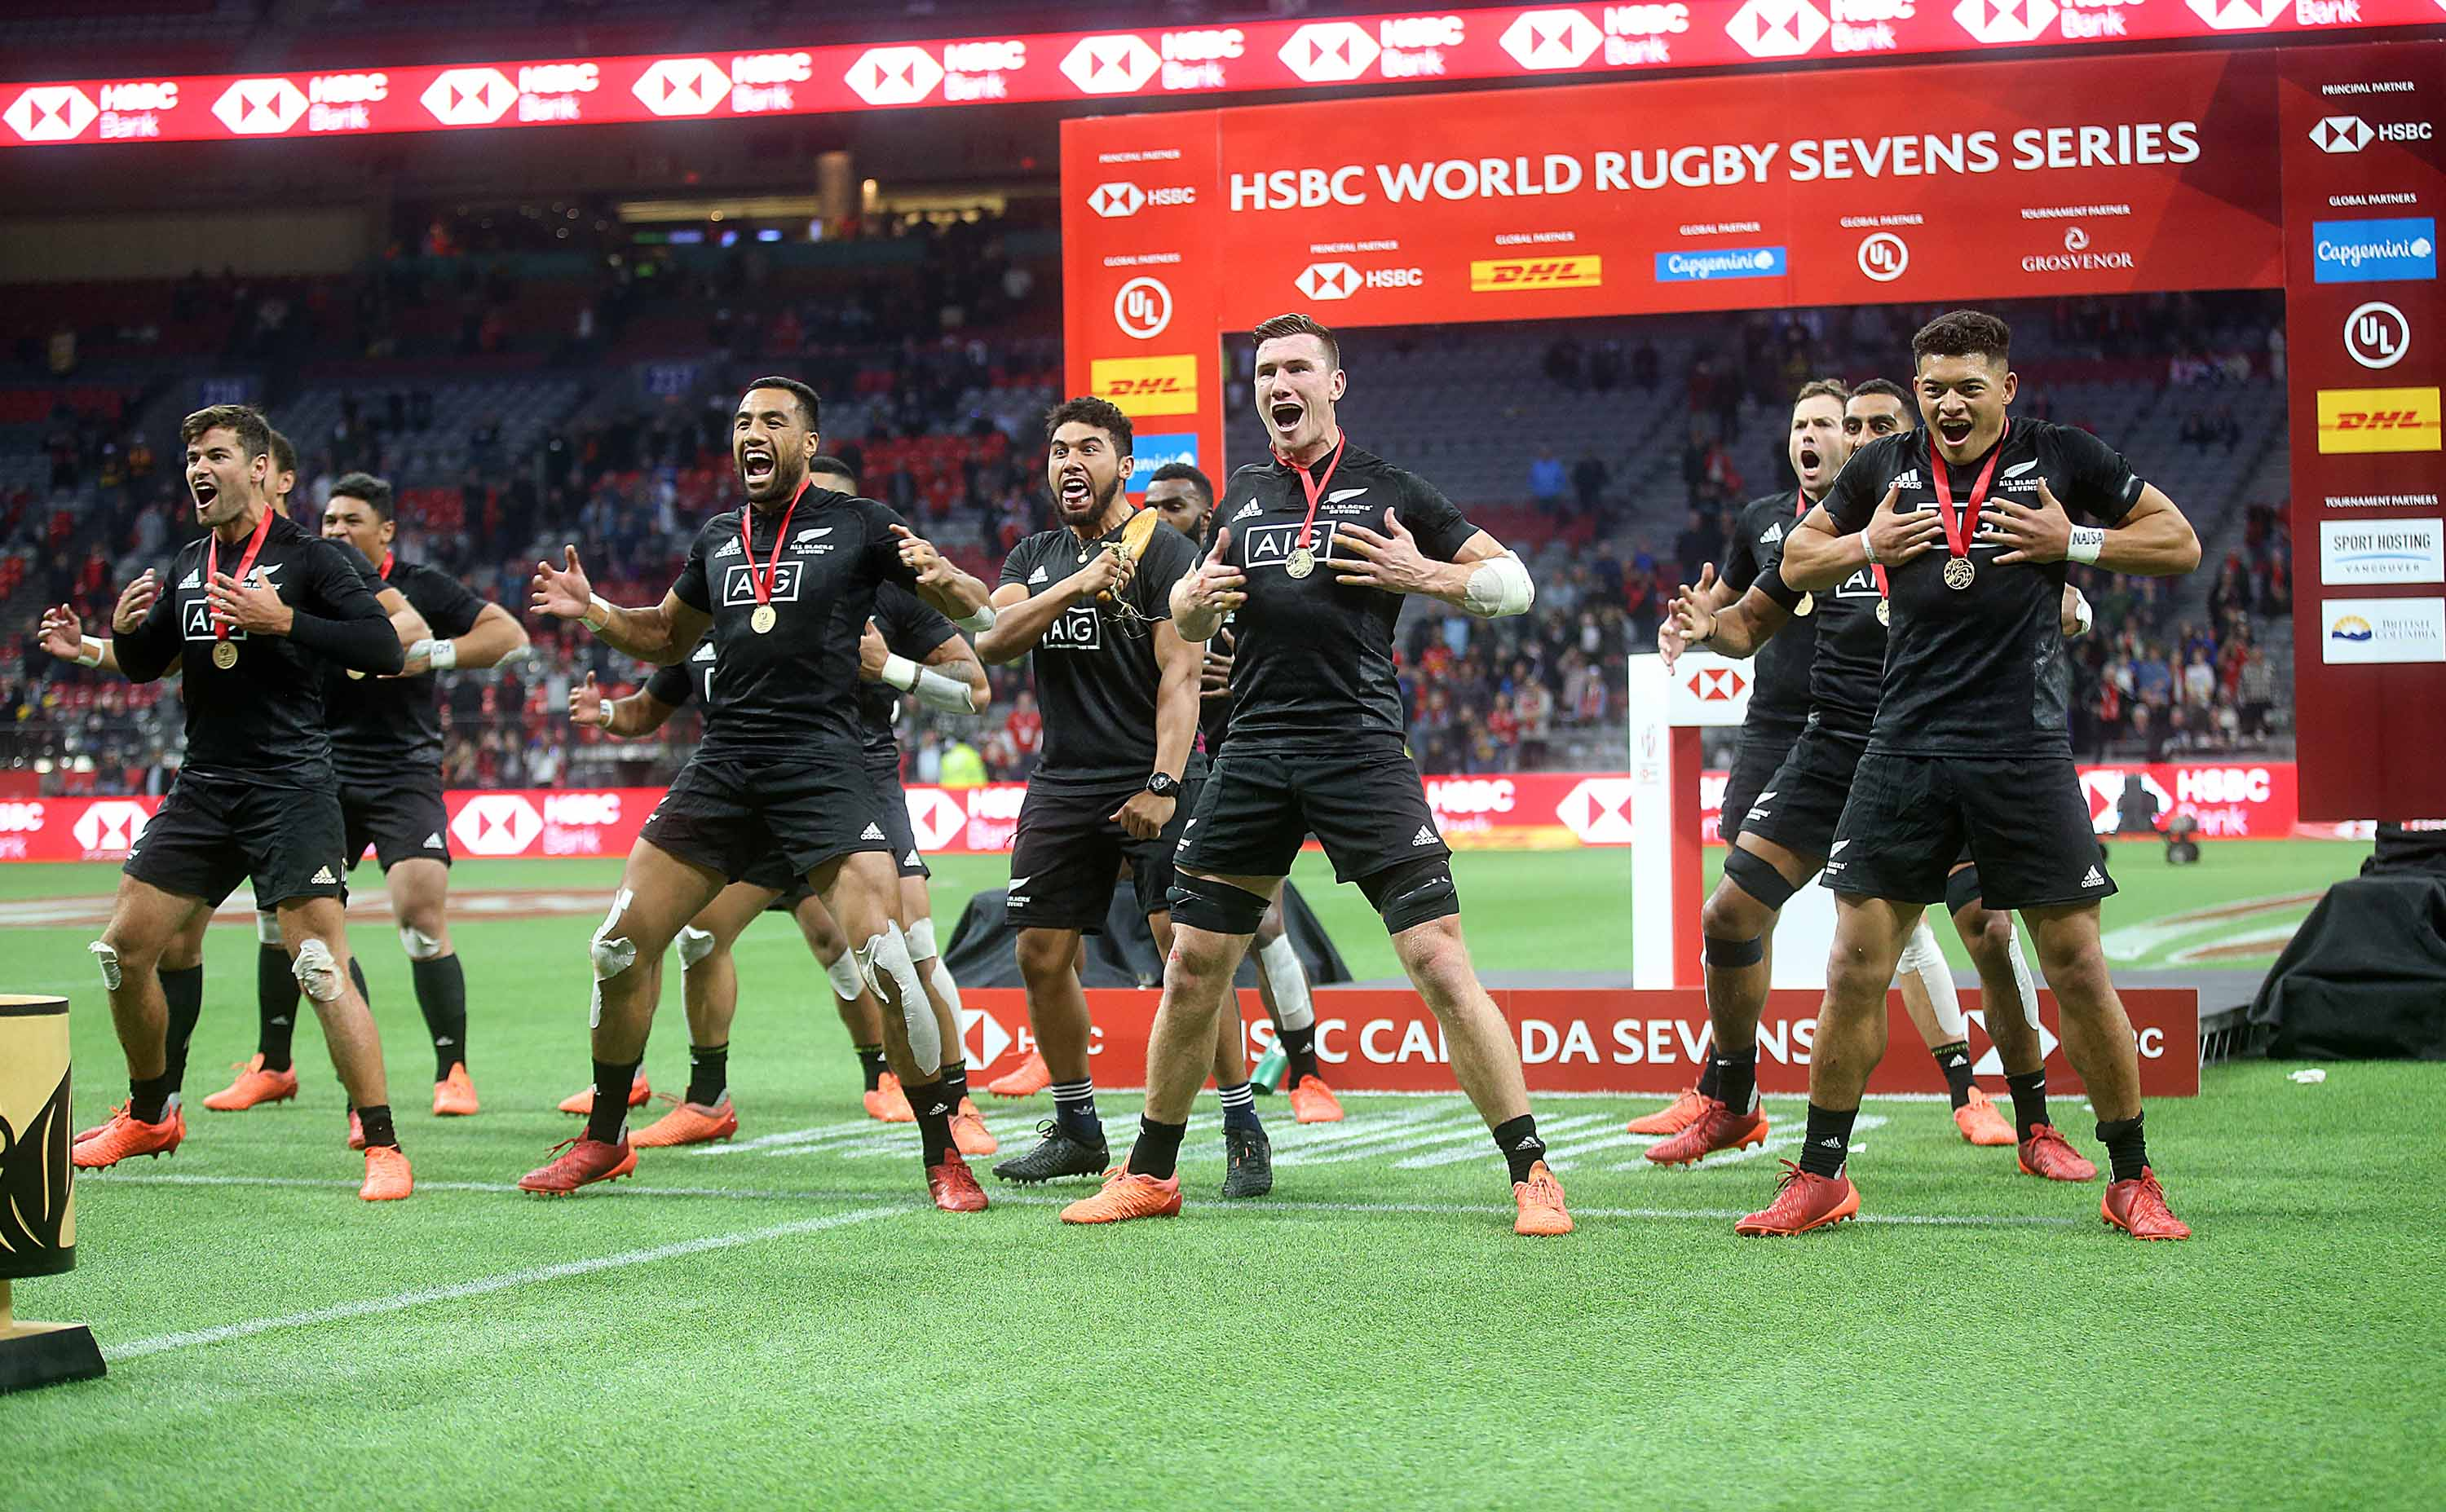 New Zealand team members perform the Haka after defeating Australia in the Rugby Sevens final in Vancouver, Canada, on March 8.